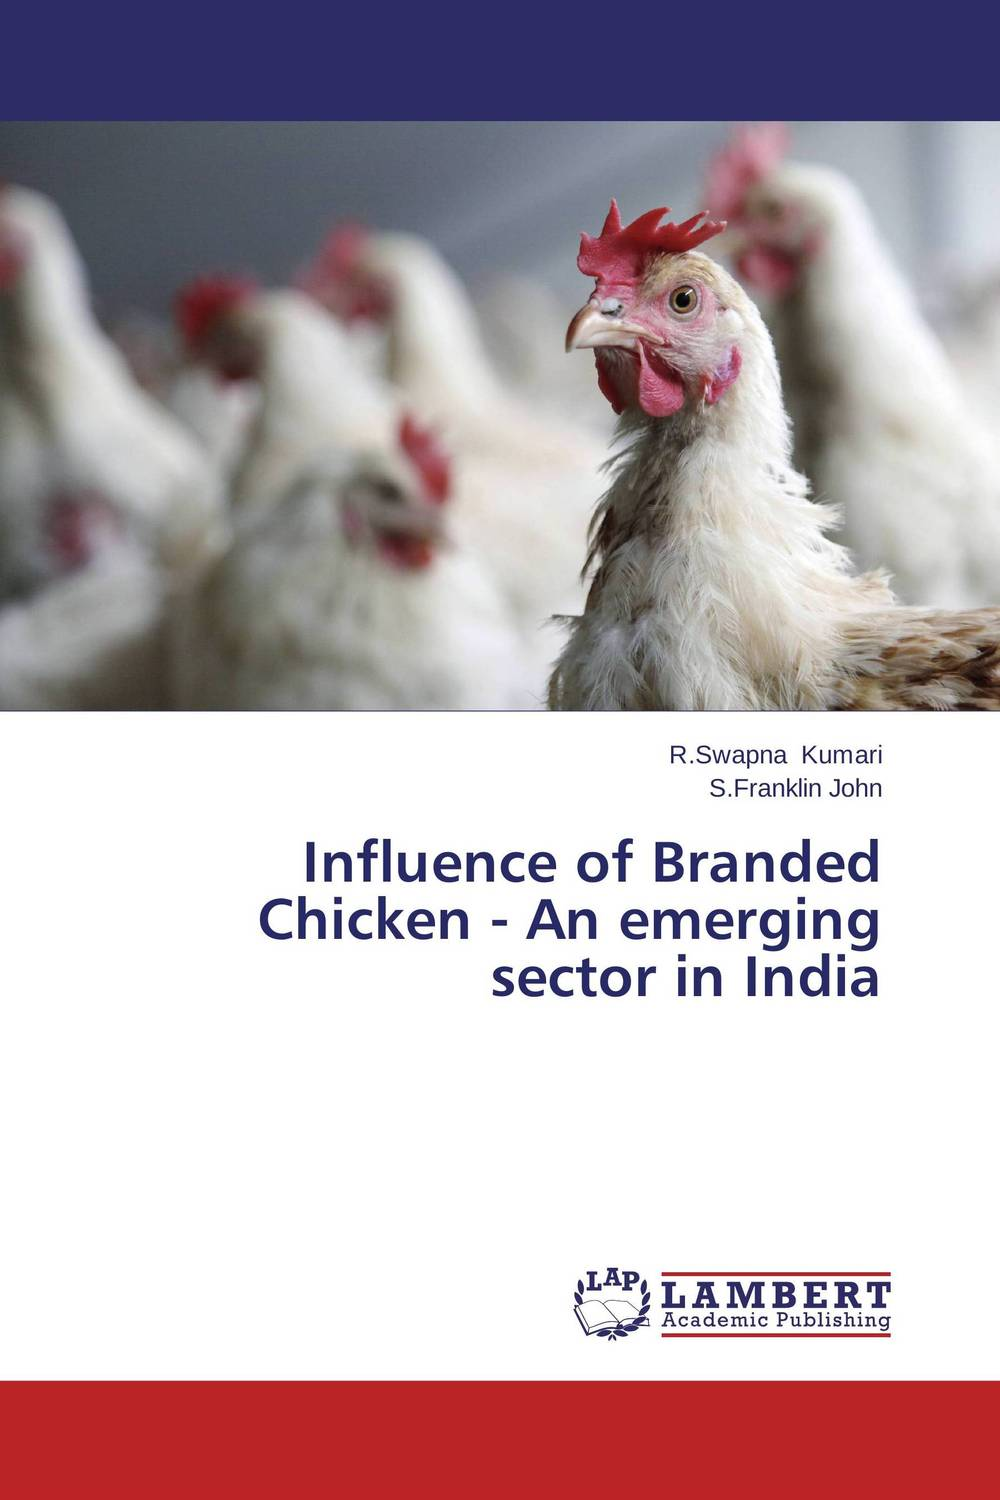 Influence of Branded Chicken - An emerging sector in India seasoned equity offerings in an emerging market